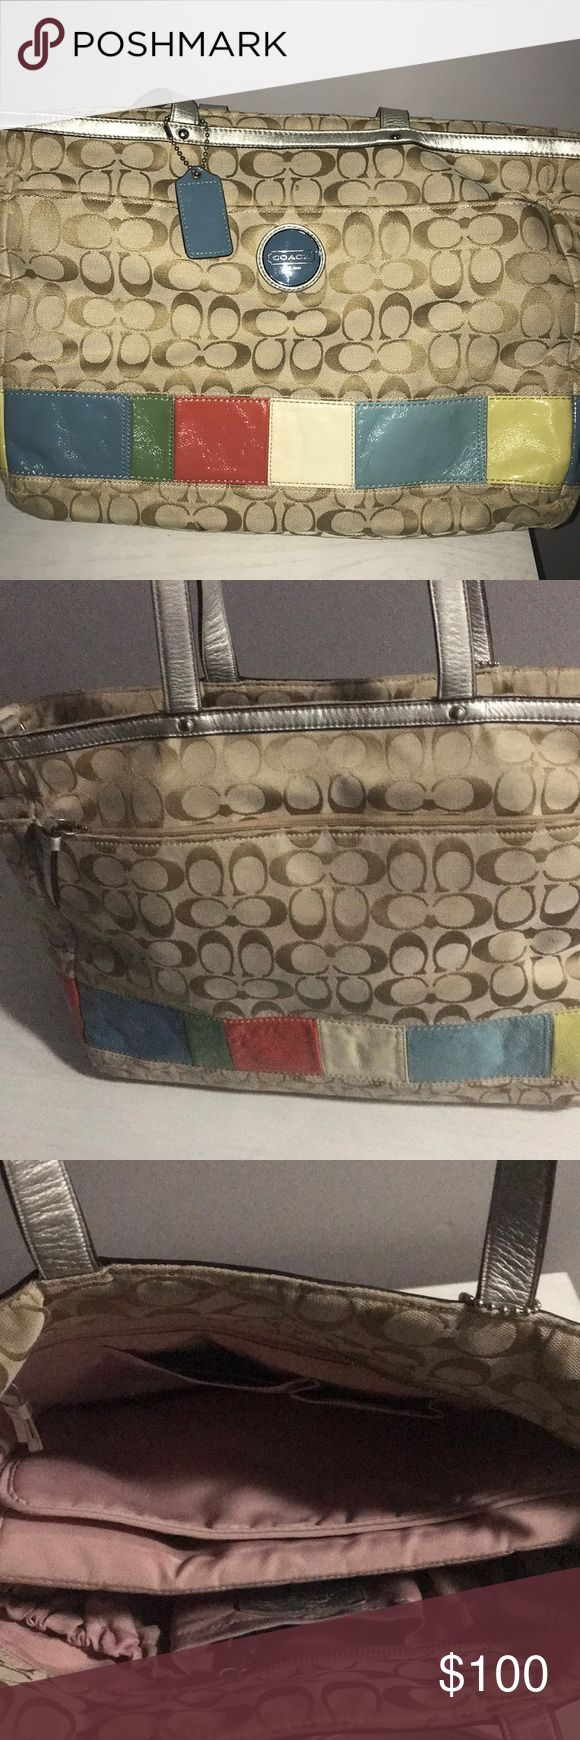 Coach diaper bag Diaper bag is 6 years old, used for roughly 6 months Coach Bags Baby Bags